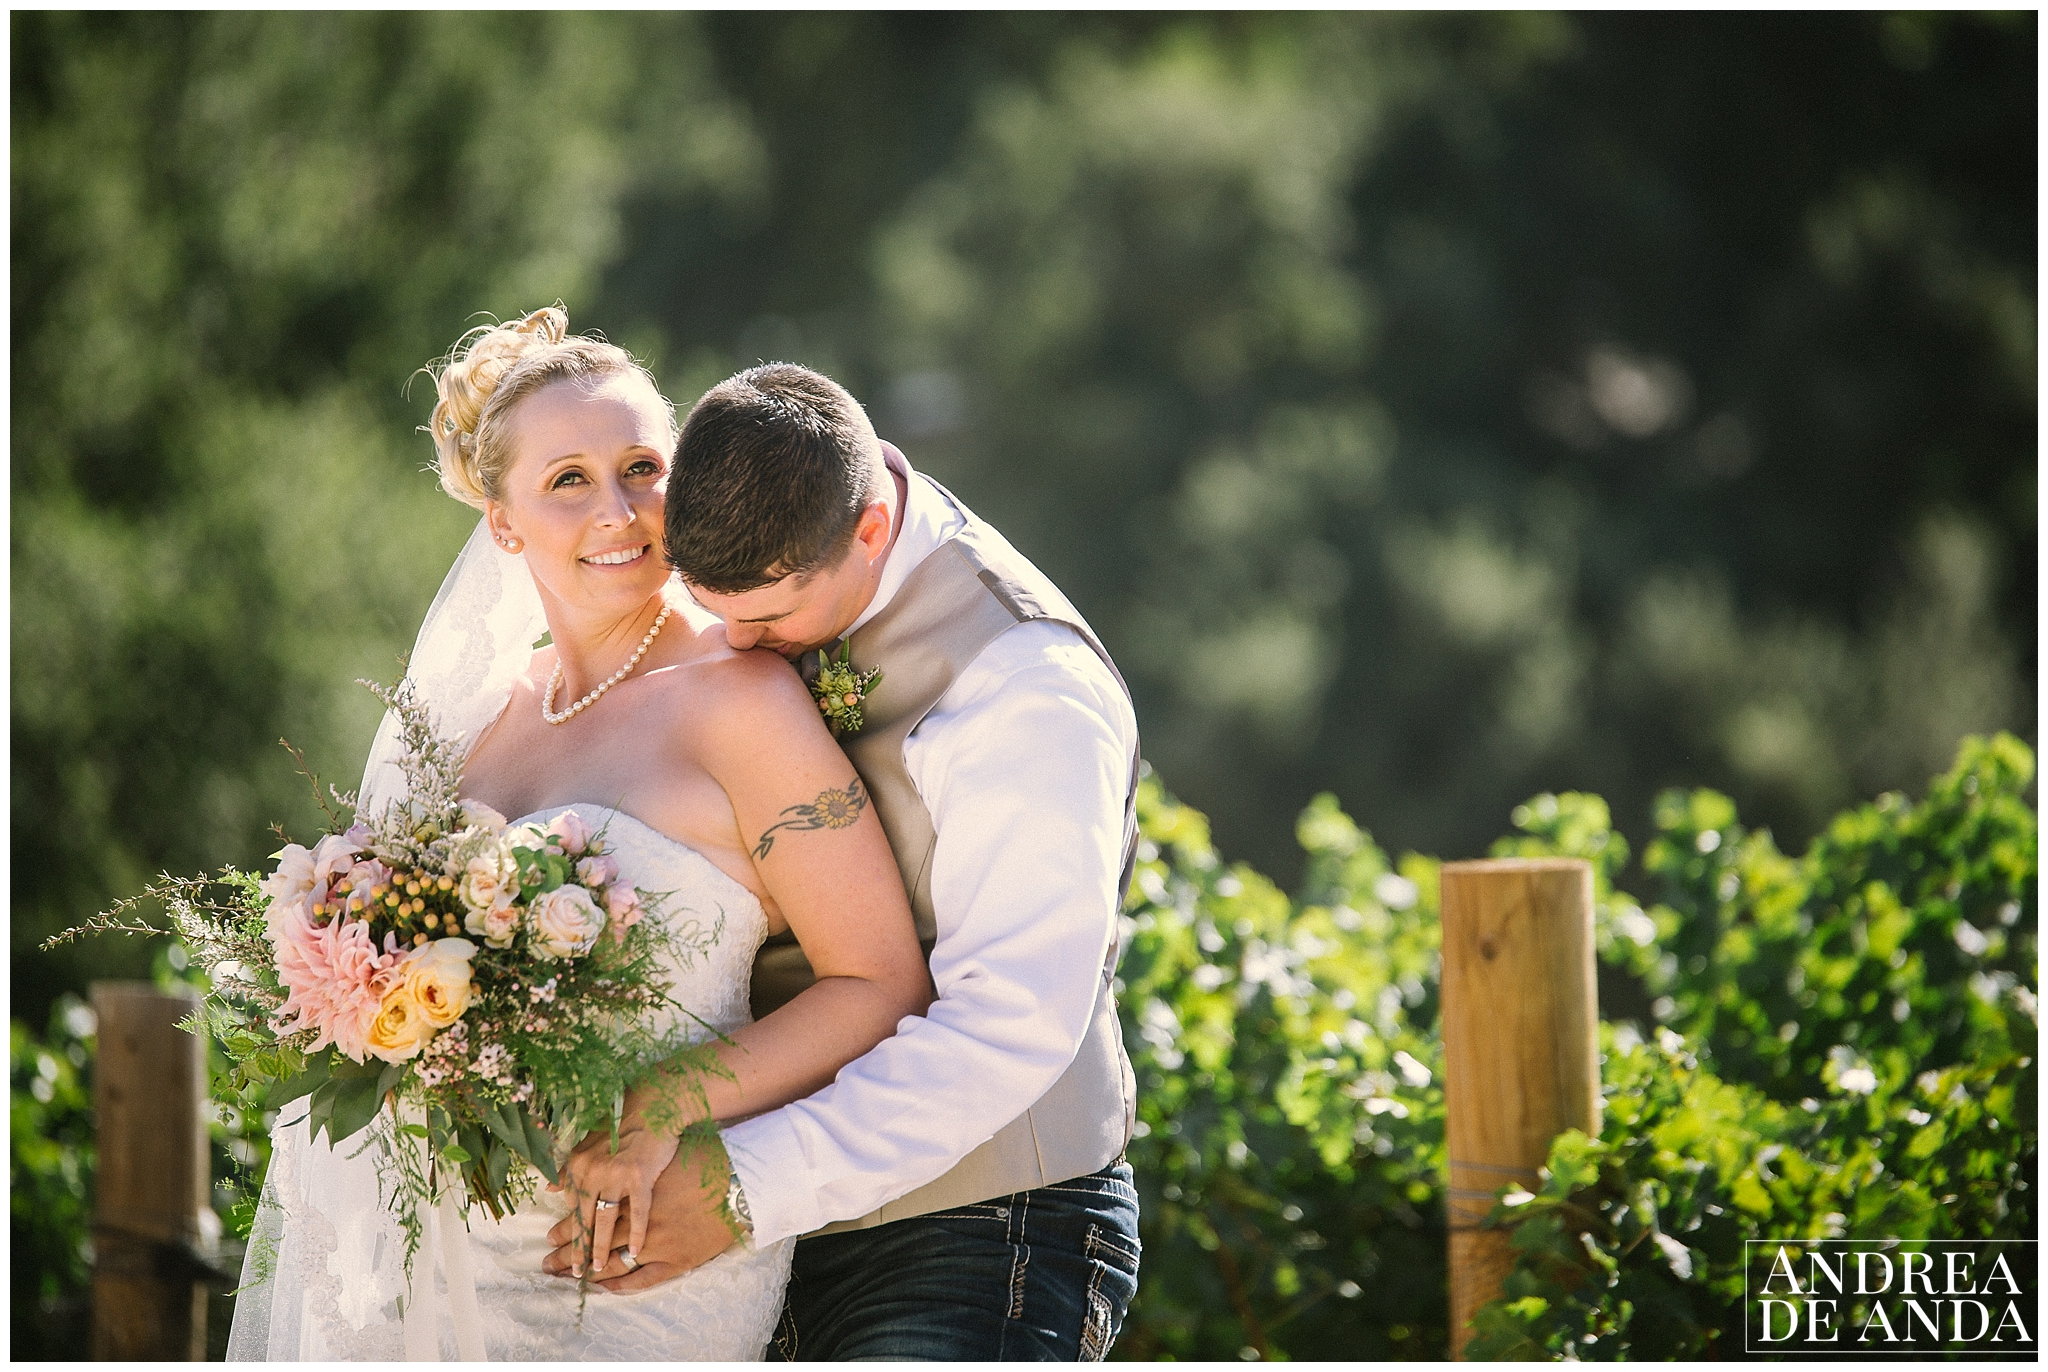 Santa Ynez Valley back yard wedding_Andrea de Anda Photography__0029.jpg